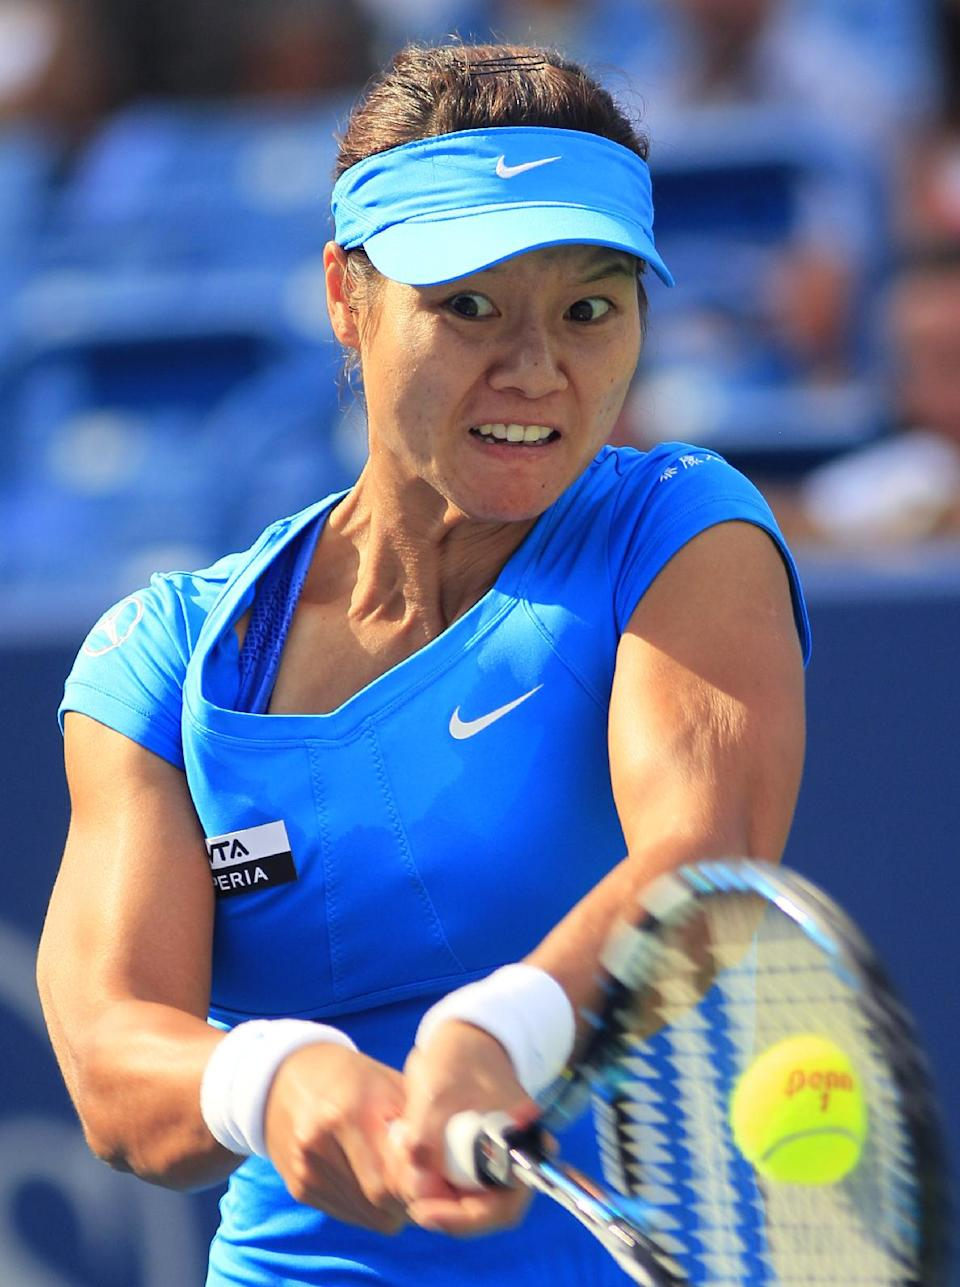 Li Na, from China, hits a backhand against Angelique Kerber, from Germany, during the women's final at the Western & Southern Open tennis tournament, Sunday, Aug. 19, 2012, in Mason, Ohio. Li won 1-6, 6-3, 6-1. (AP Photo/Al Behrman)